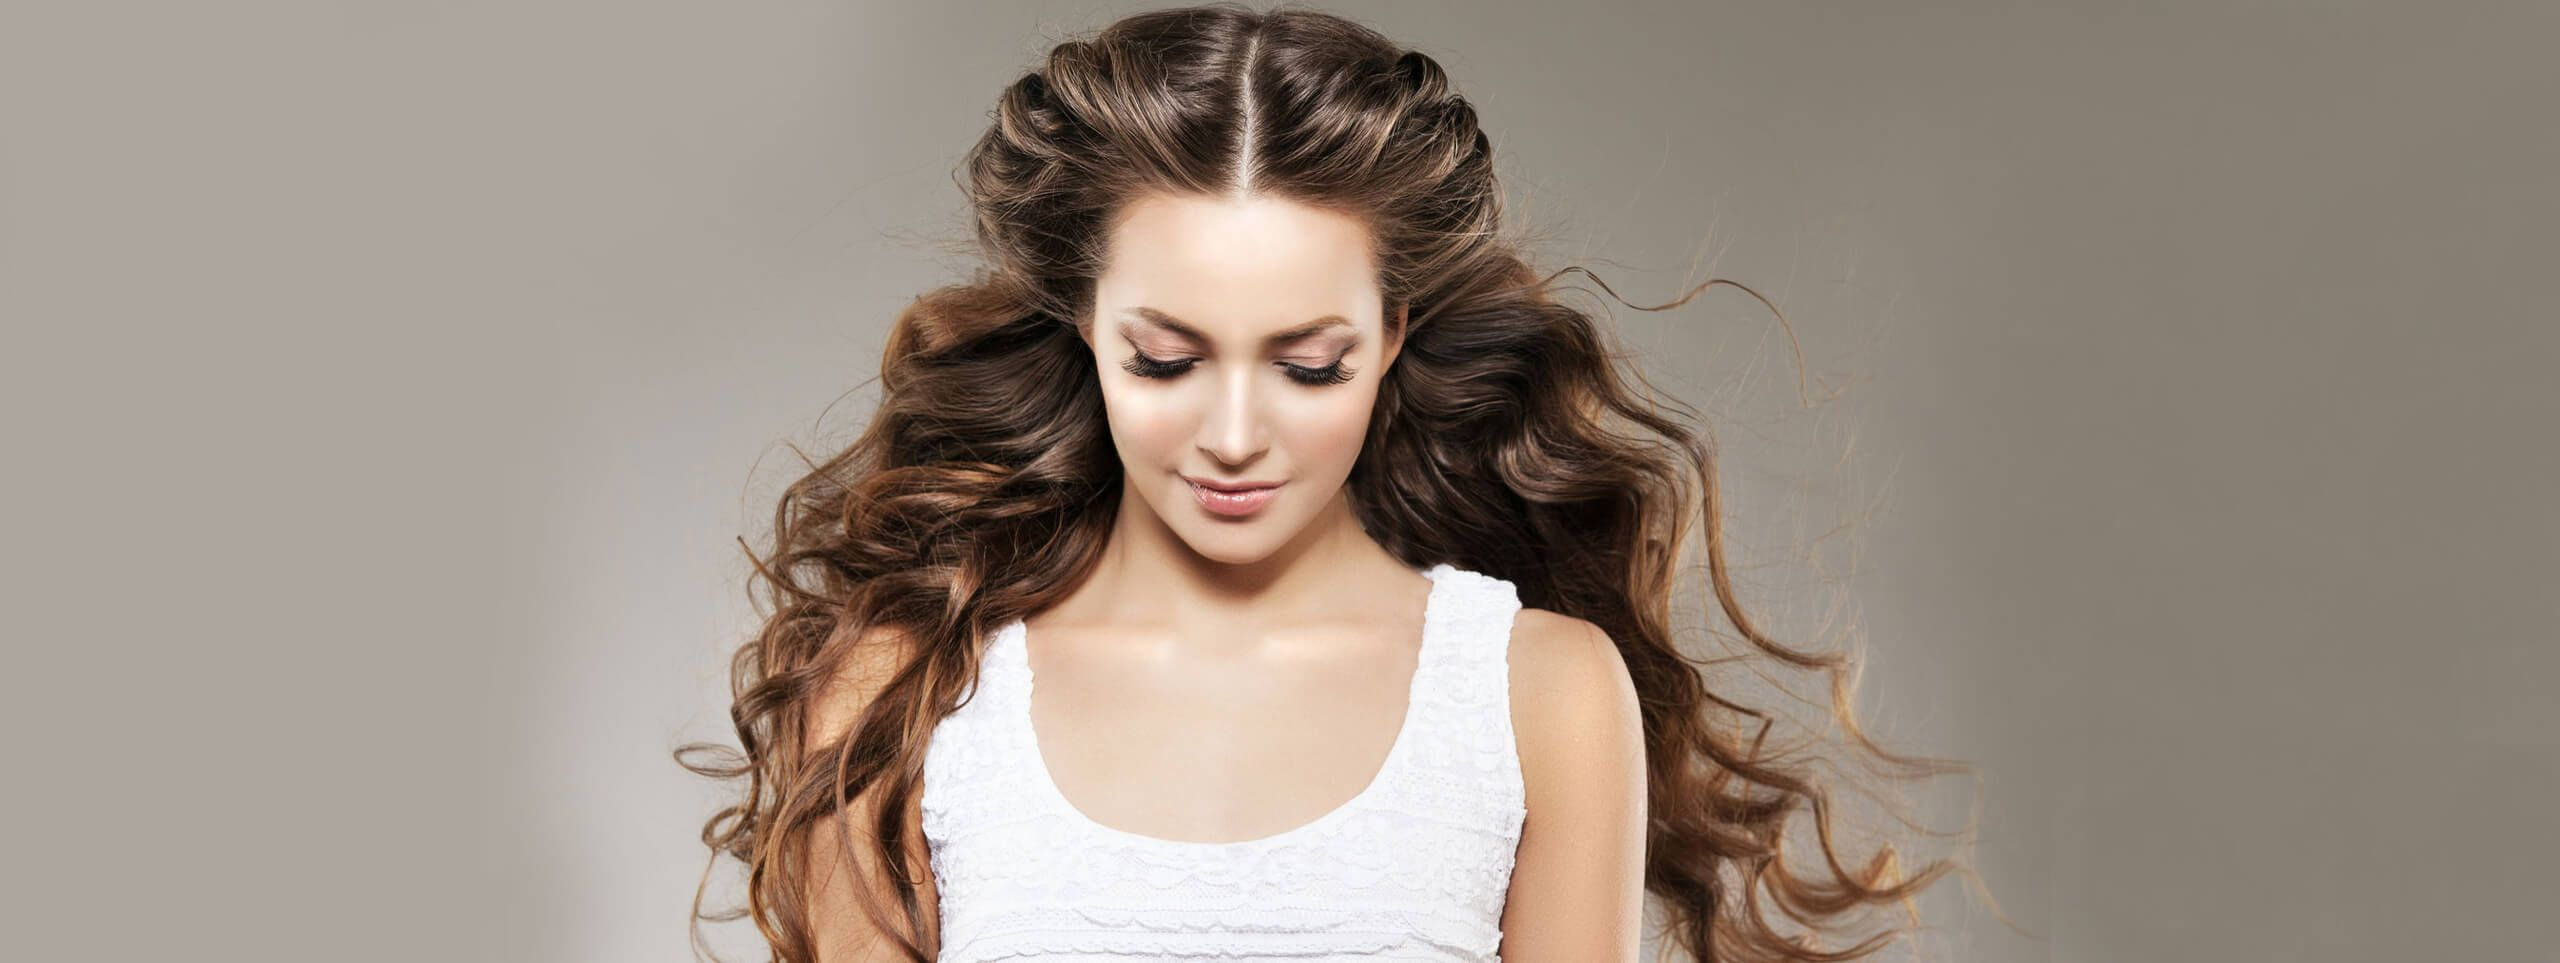 Woman with voluminous curly hairstyle